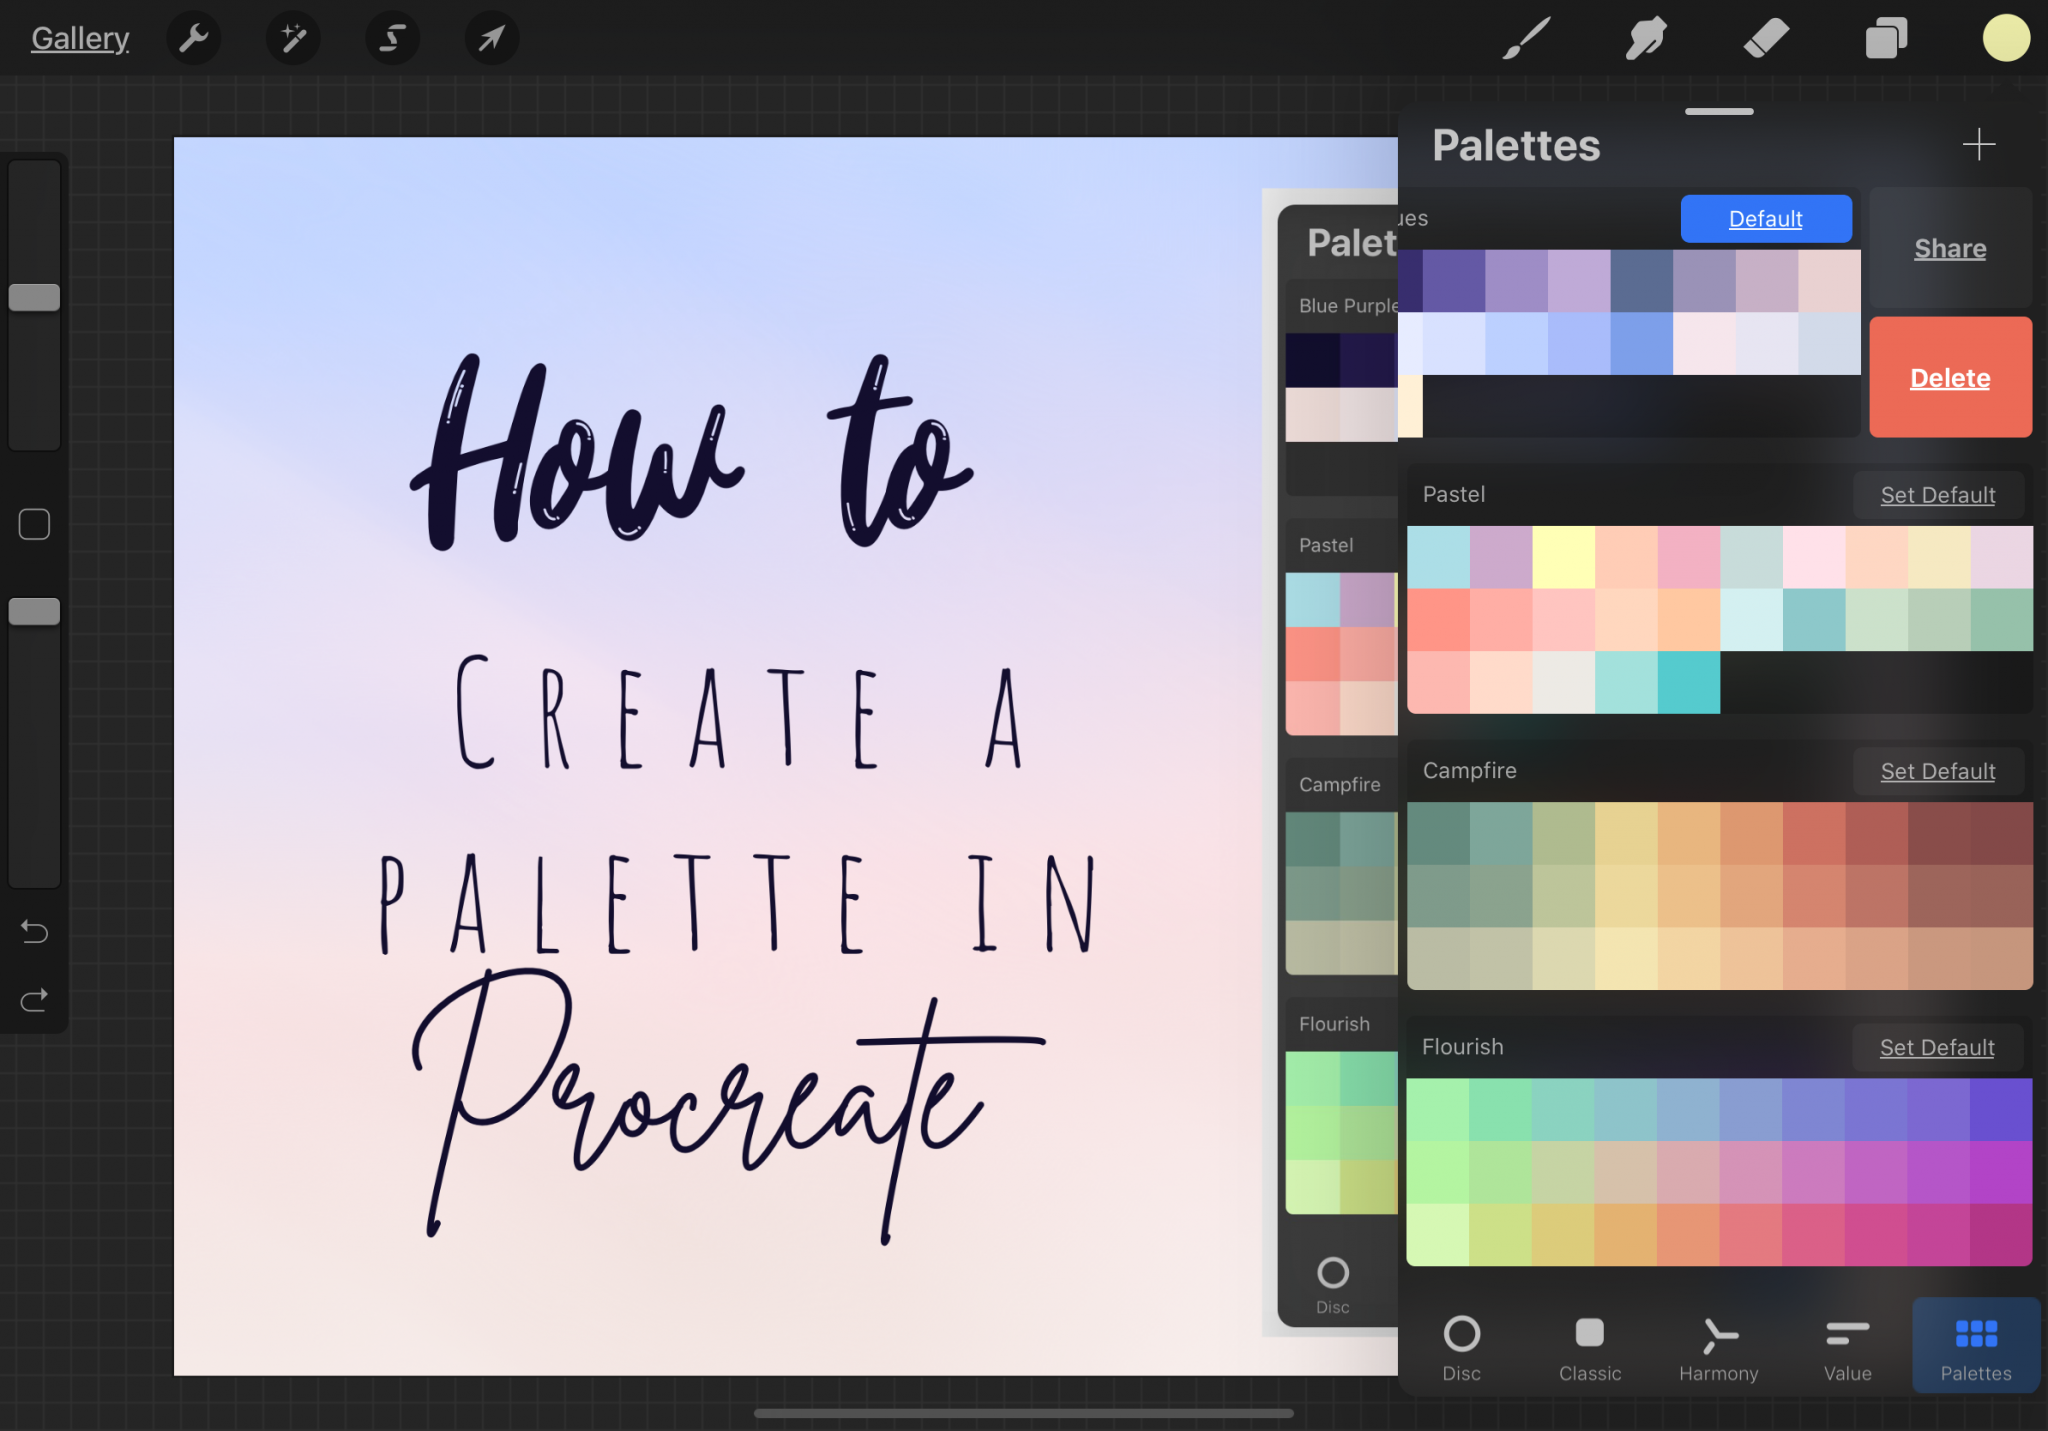 Procreate Palettes - How To Share And Delete